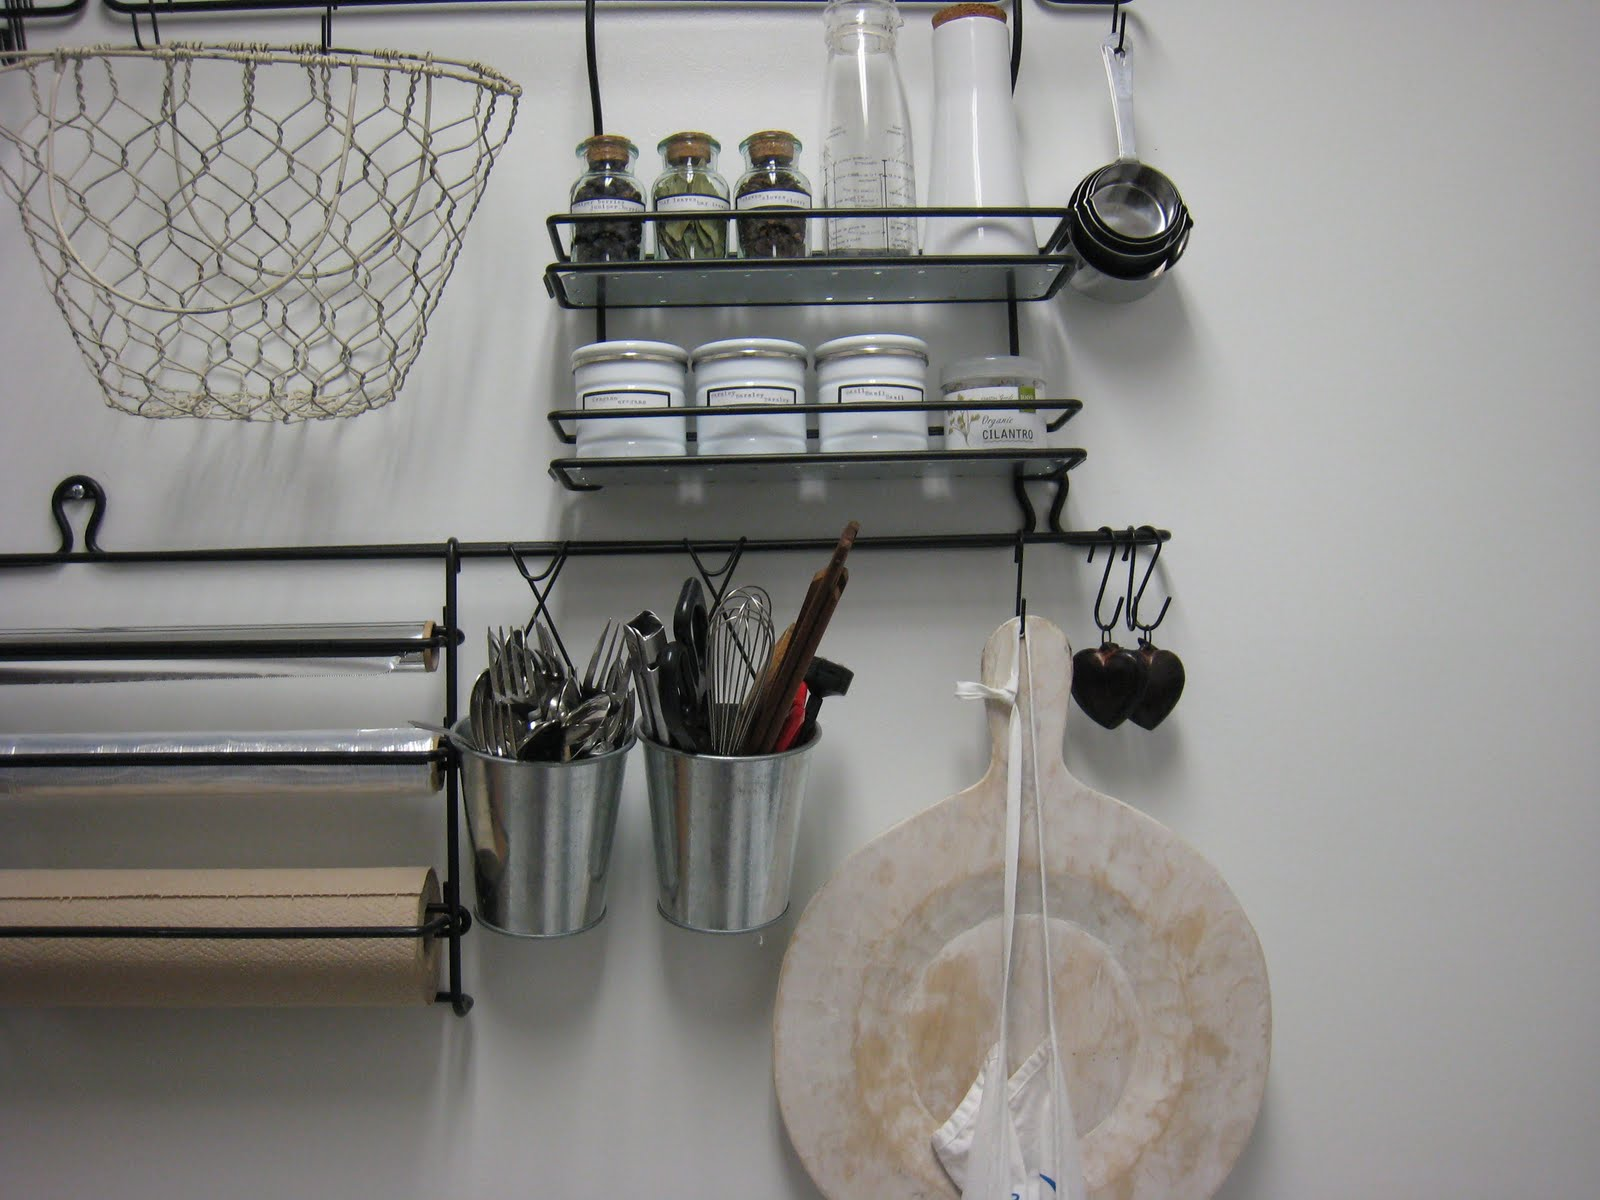 Top Kitchen Wall Organizers – The cricket wealth Times co. KK14